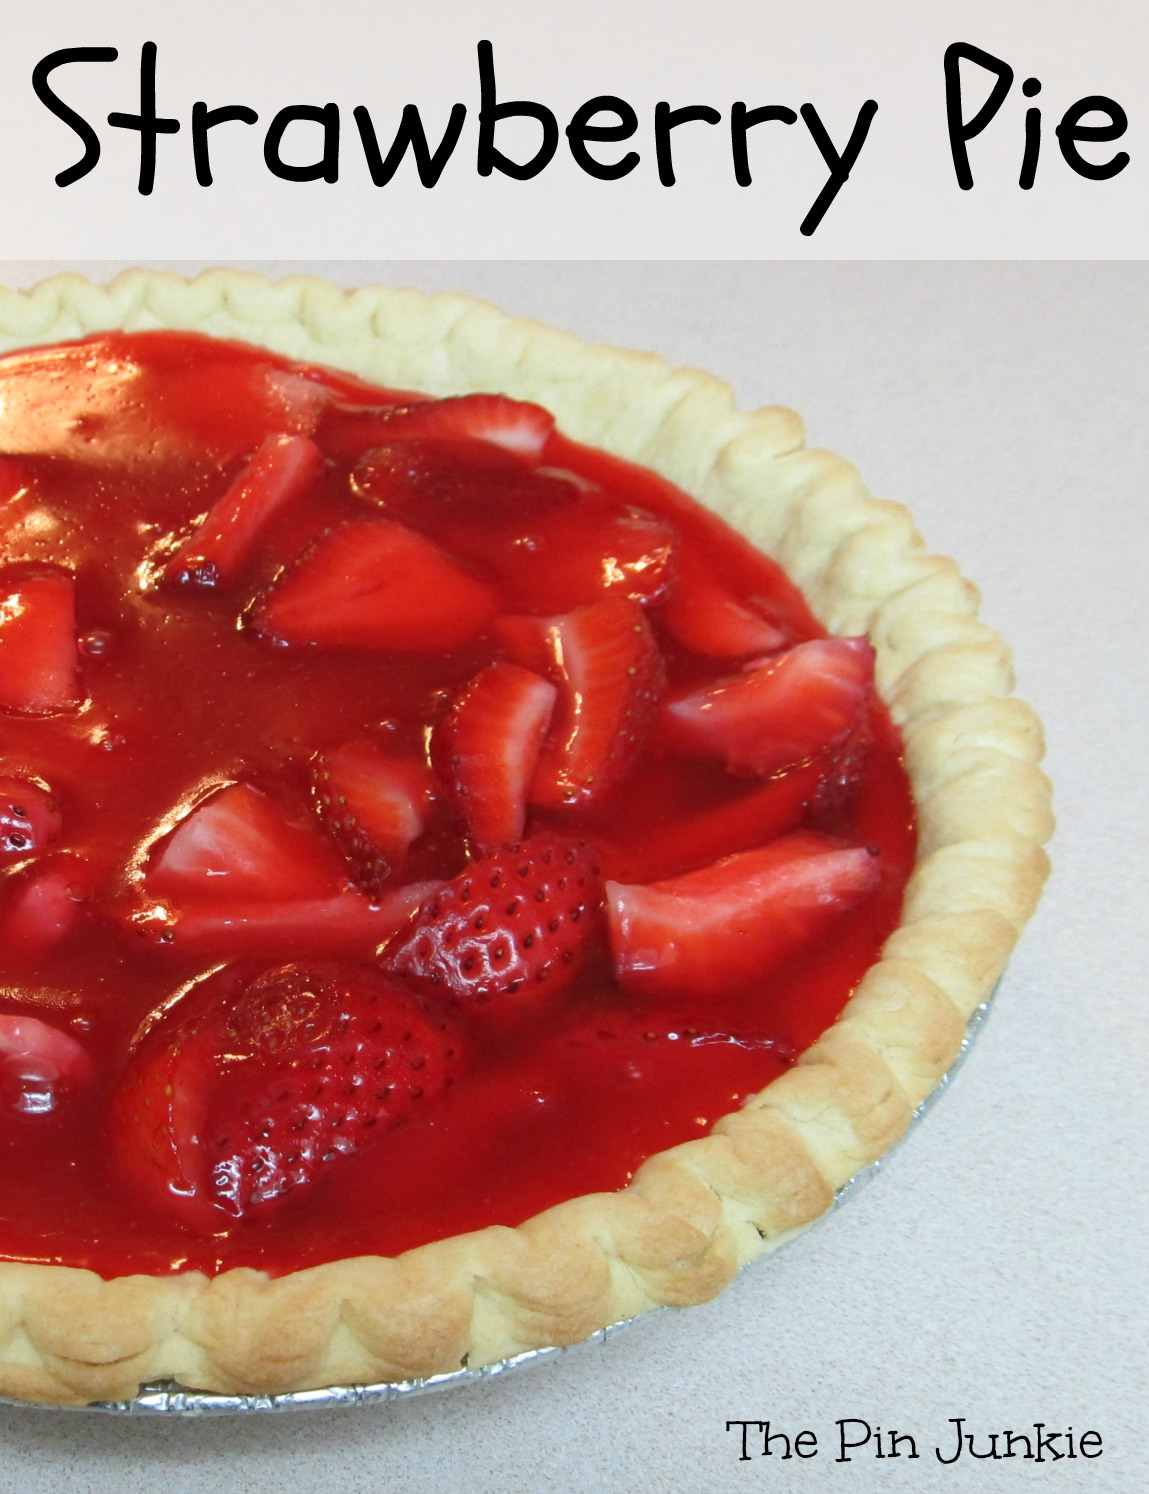 trawberry pie